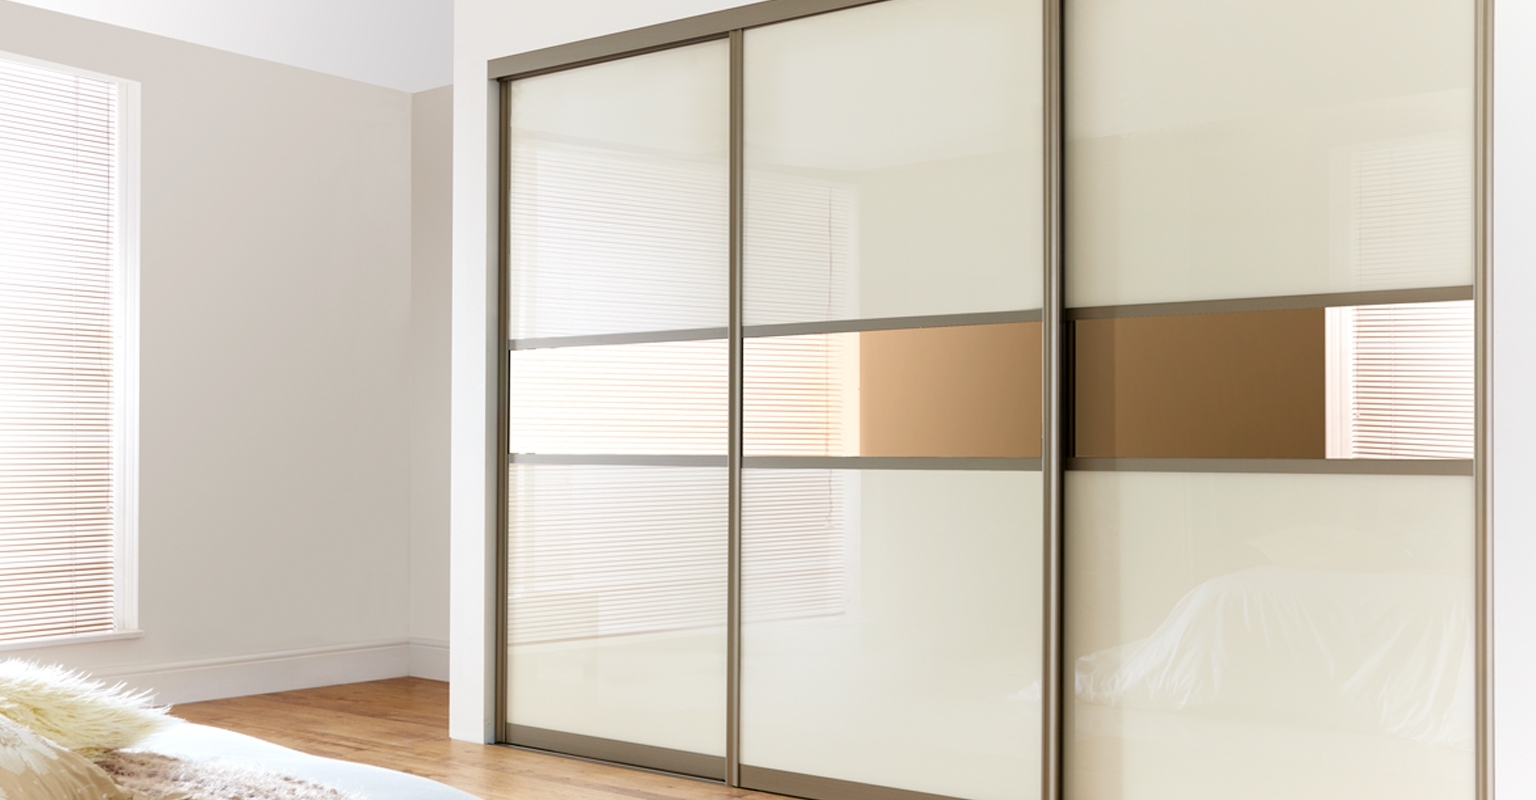 2018 Imperial Wardrobes Intended For Fitted Wardrobes Brochure, Different Types Of Wardrobes & Fittings (View 1 of 15)